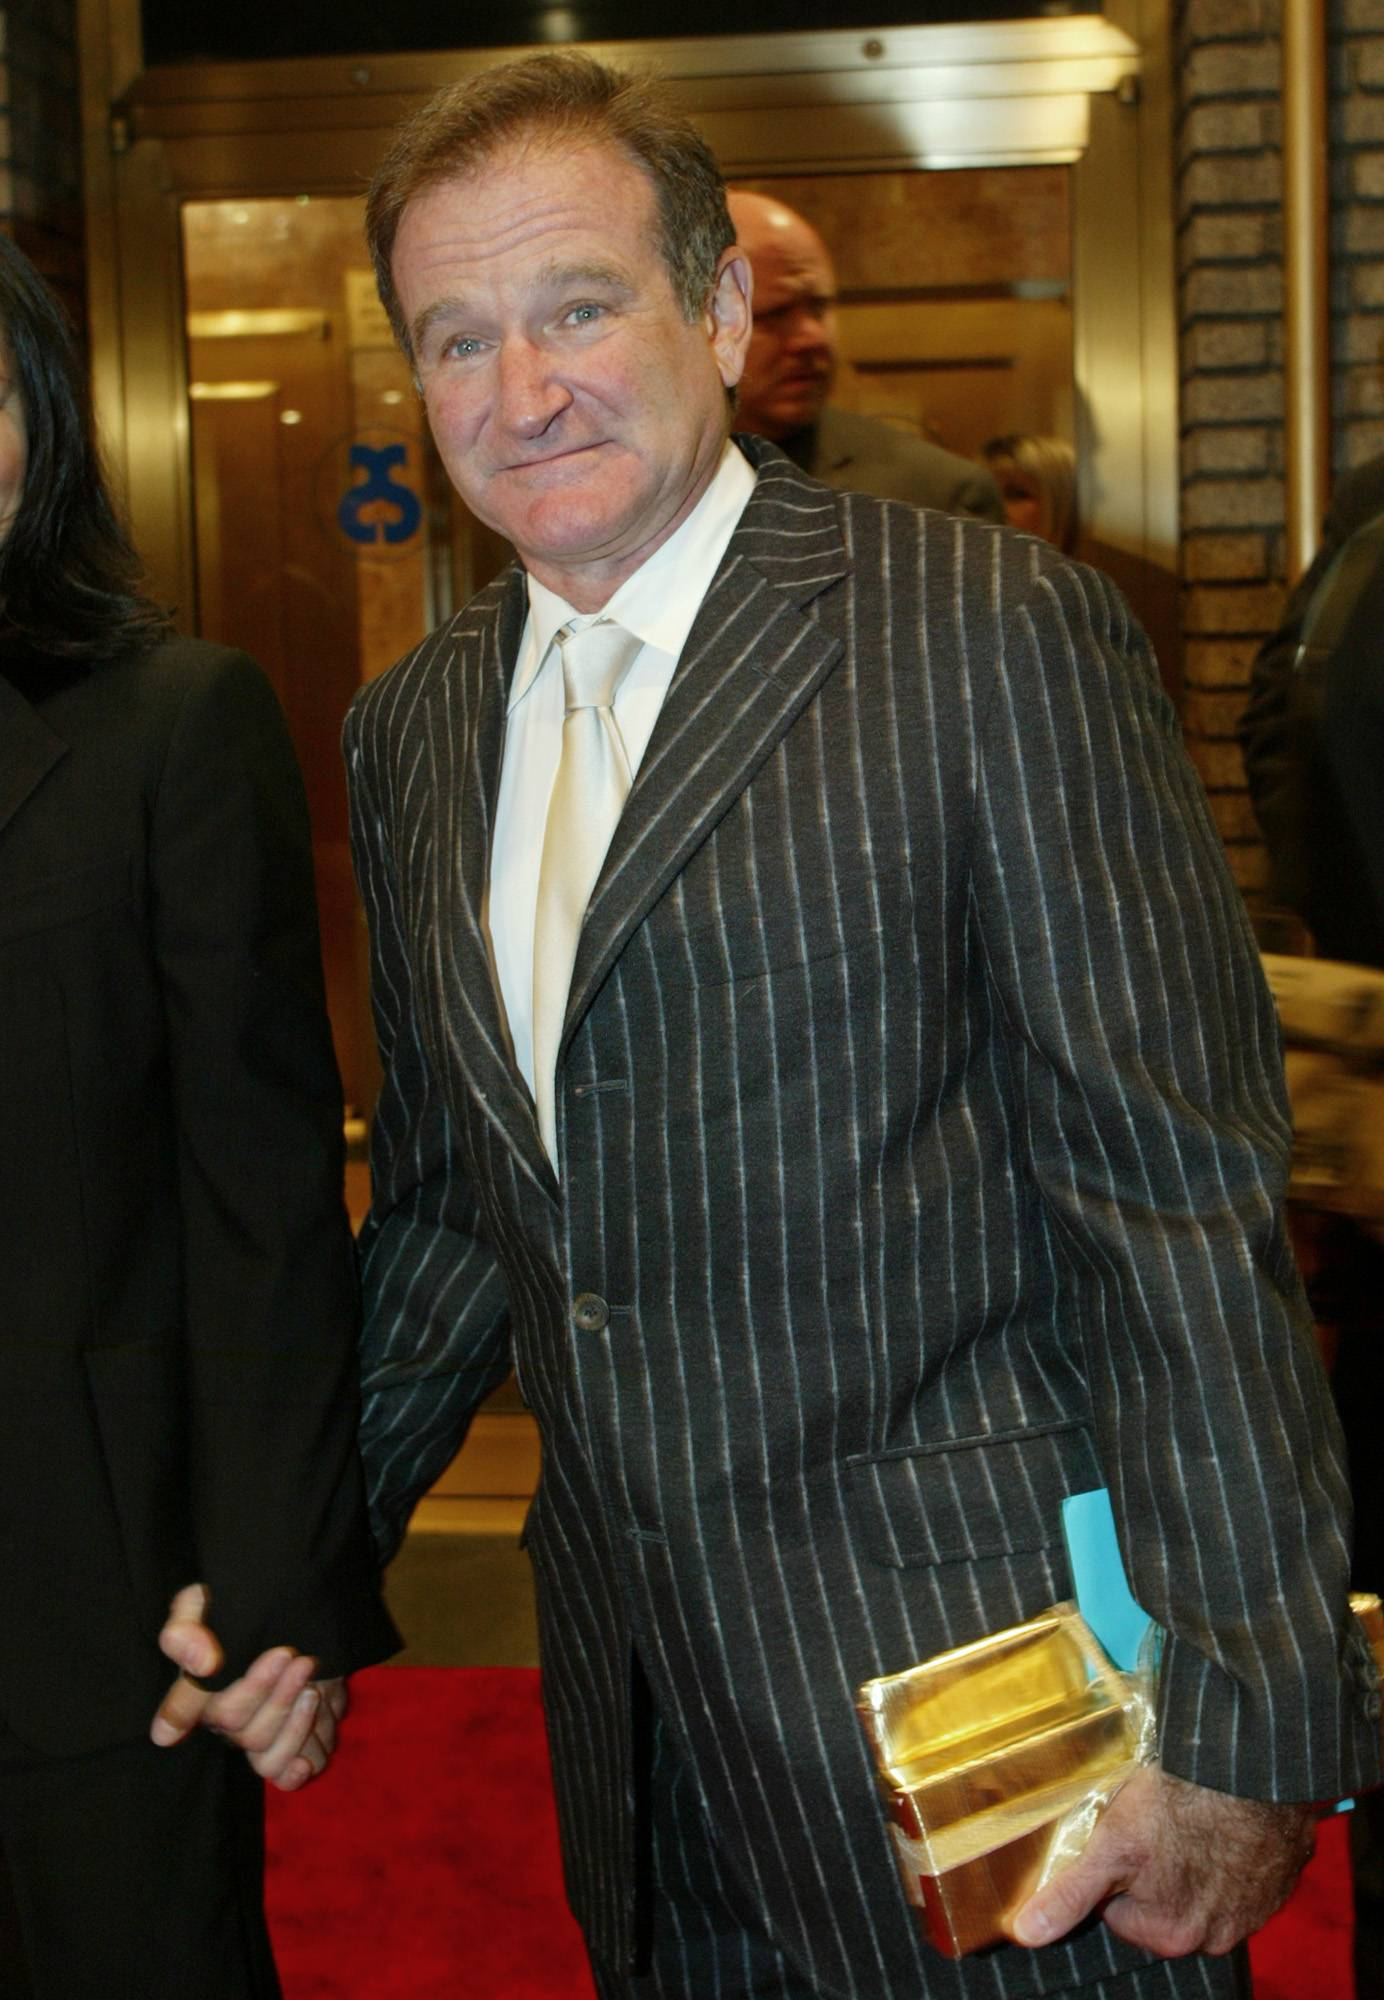 Robin Williams arrives at the Broadhurst Theater in Times Square for the opening of Billy Crystal's new show titled 700 Sundays, New York, in this, Dec. 5, 2004, file photo.